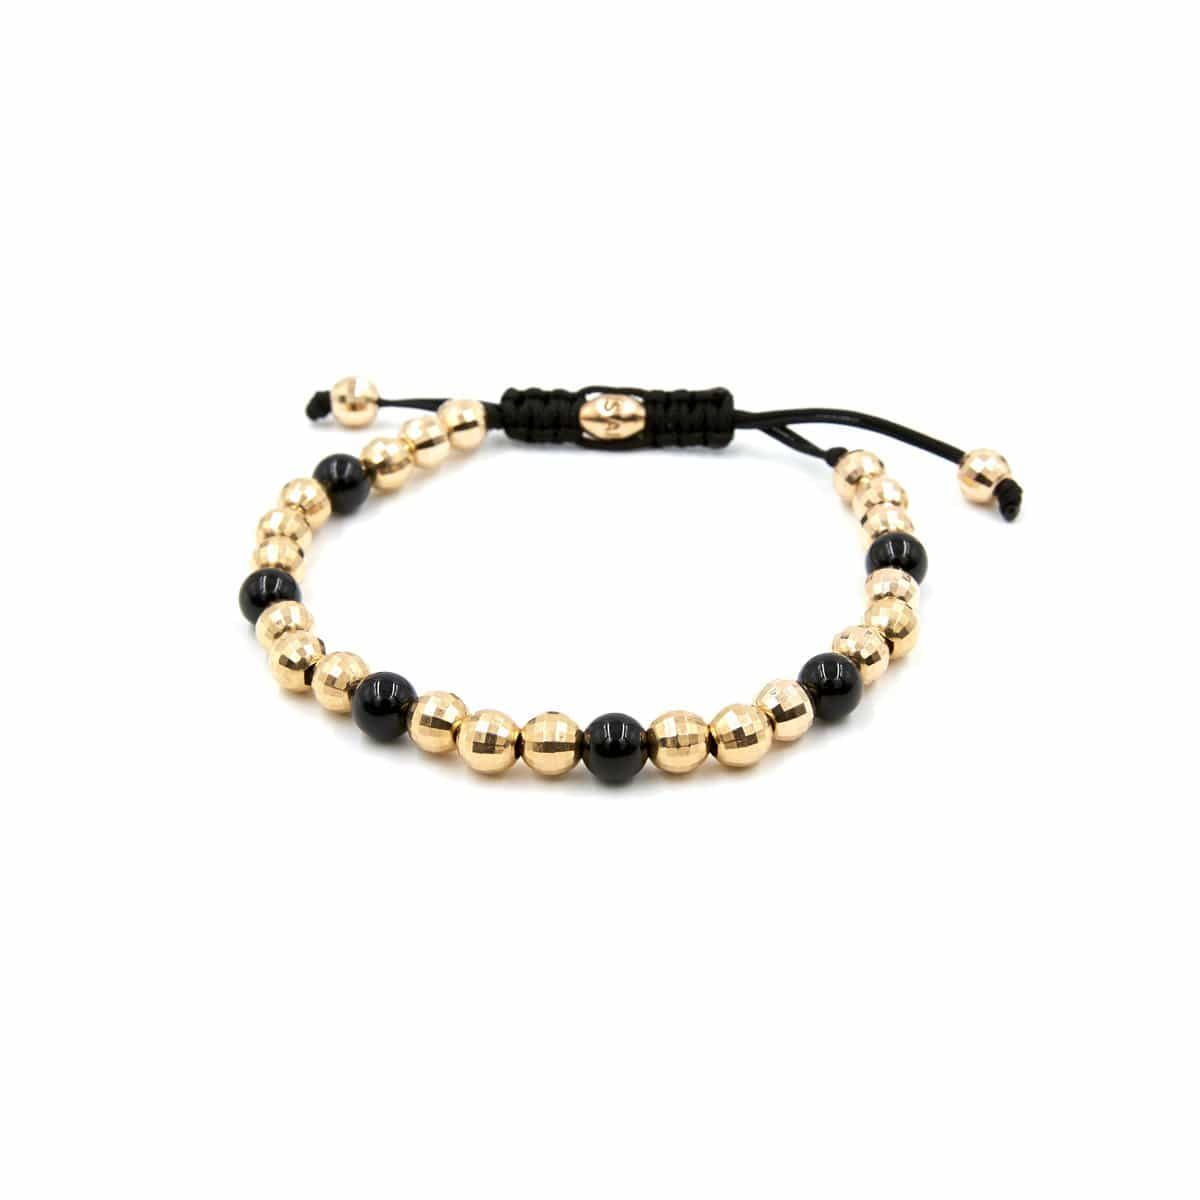 BEAD  BRACELET - Chris Aire Fine Jewelry & Timepieces